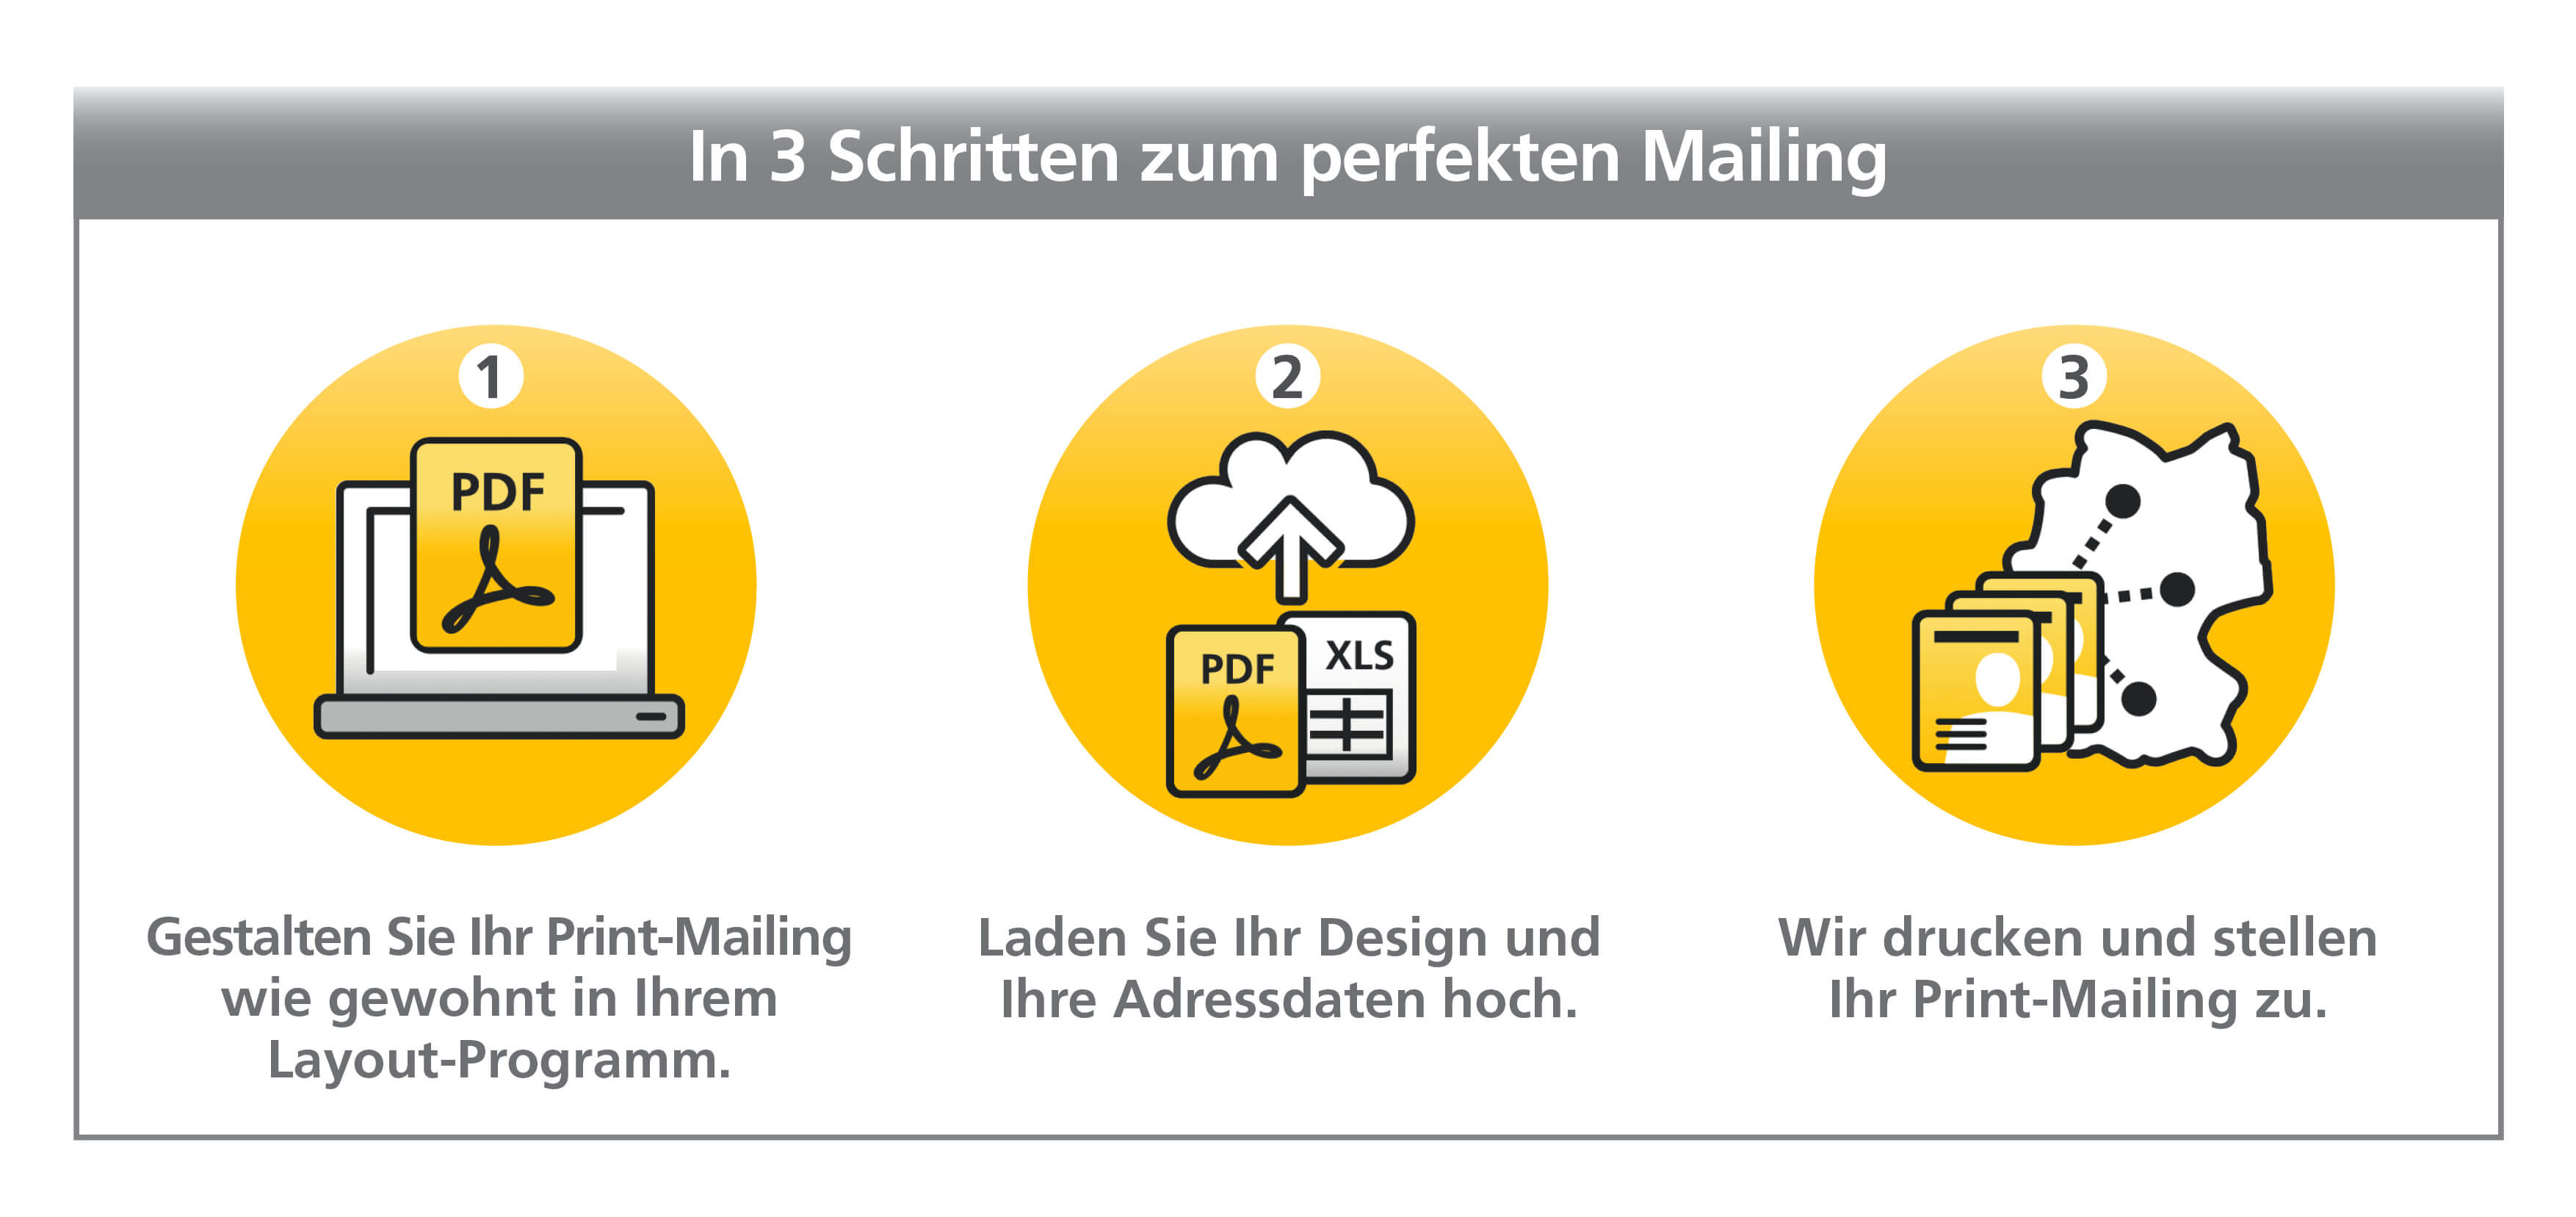 Self Service Tool Deutsche Post